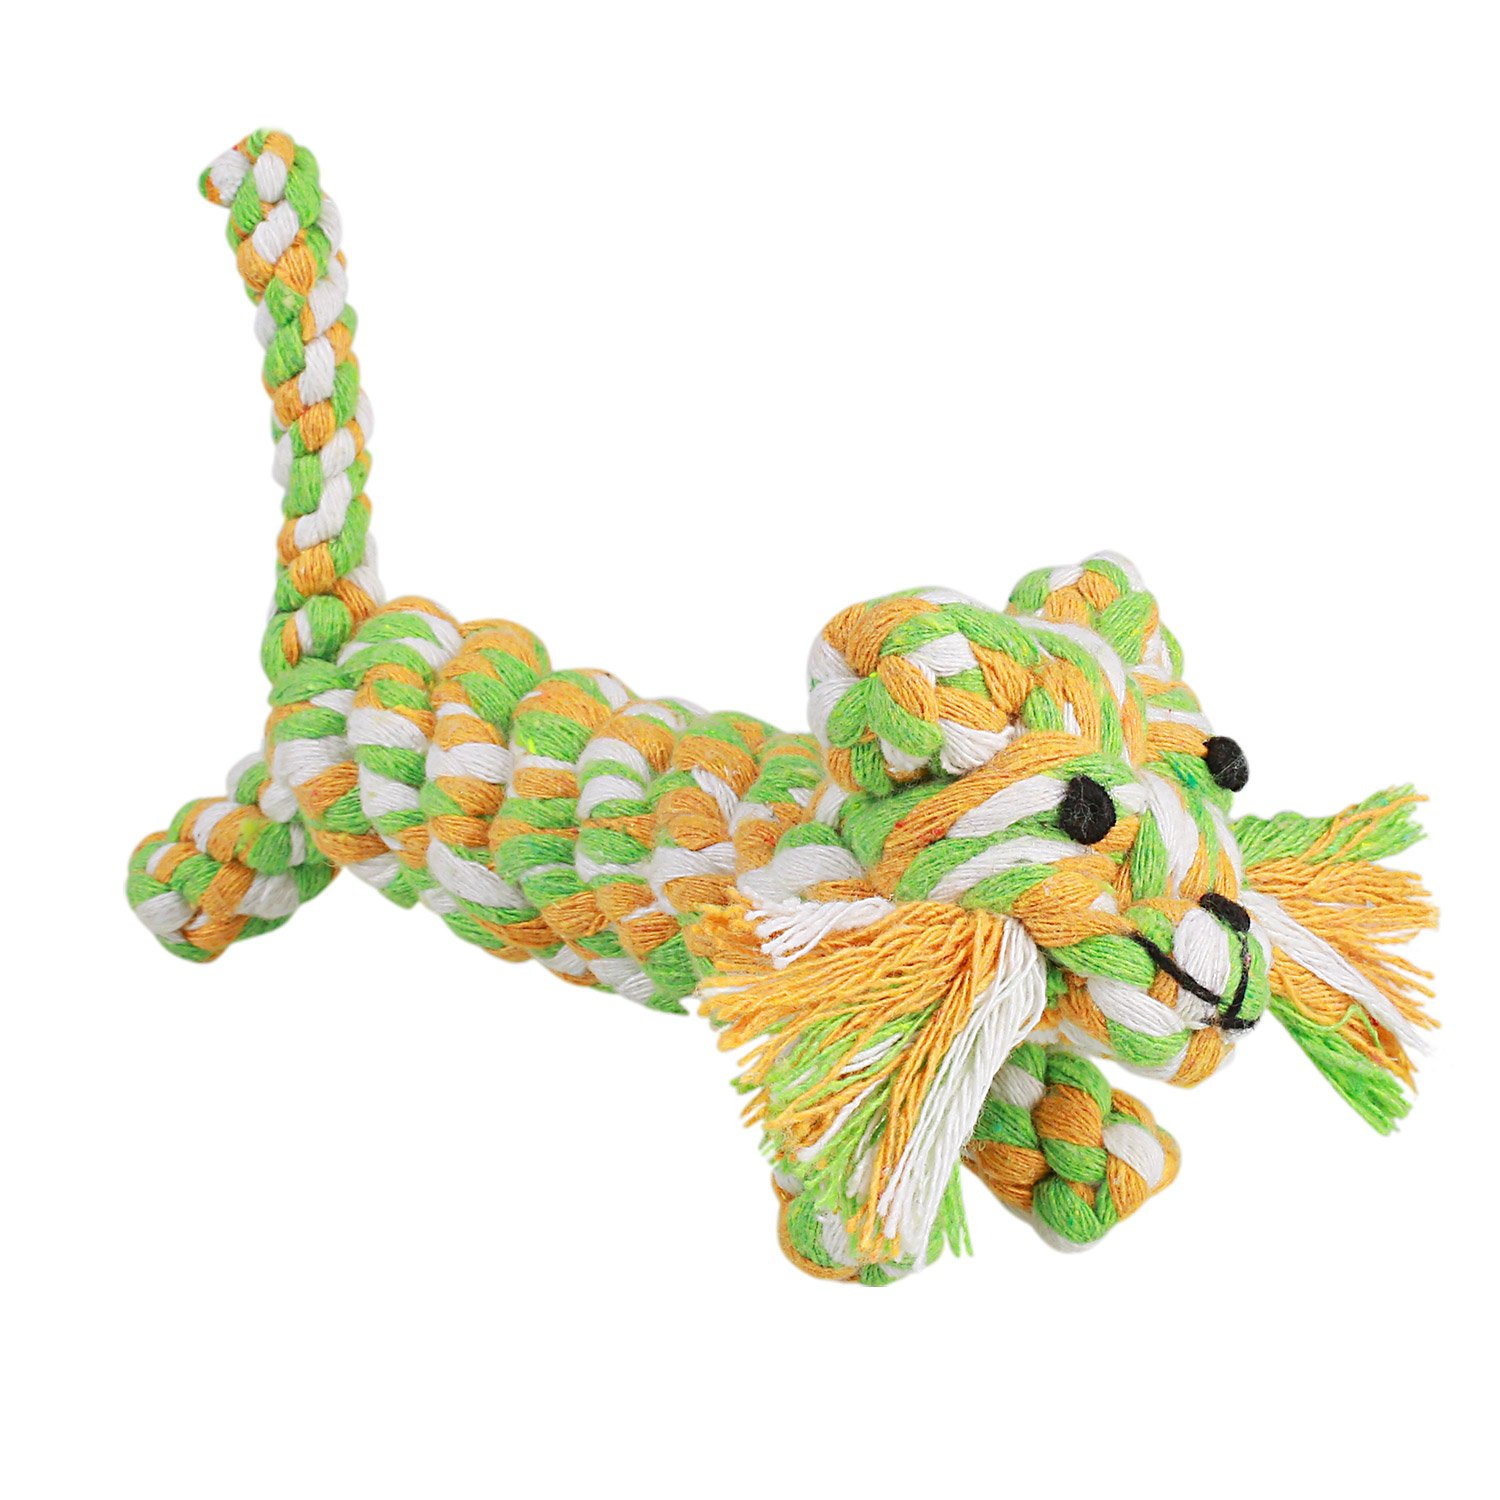 Dog Toys by Pecute Puppy Dog Cotton Rope Toys Durable Chew Toy Set for Small and Medium Dogs - 4 Pack Gift Set